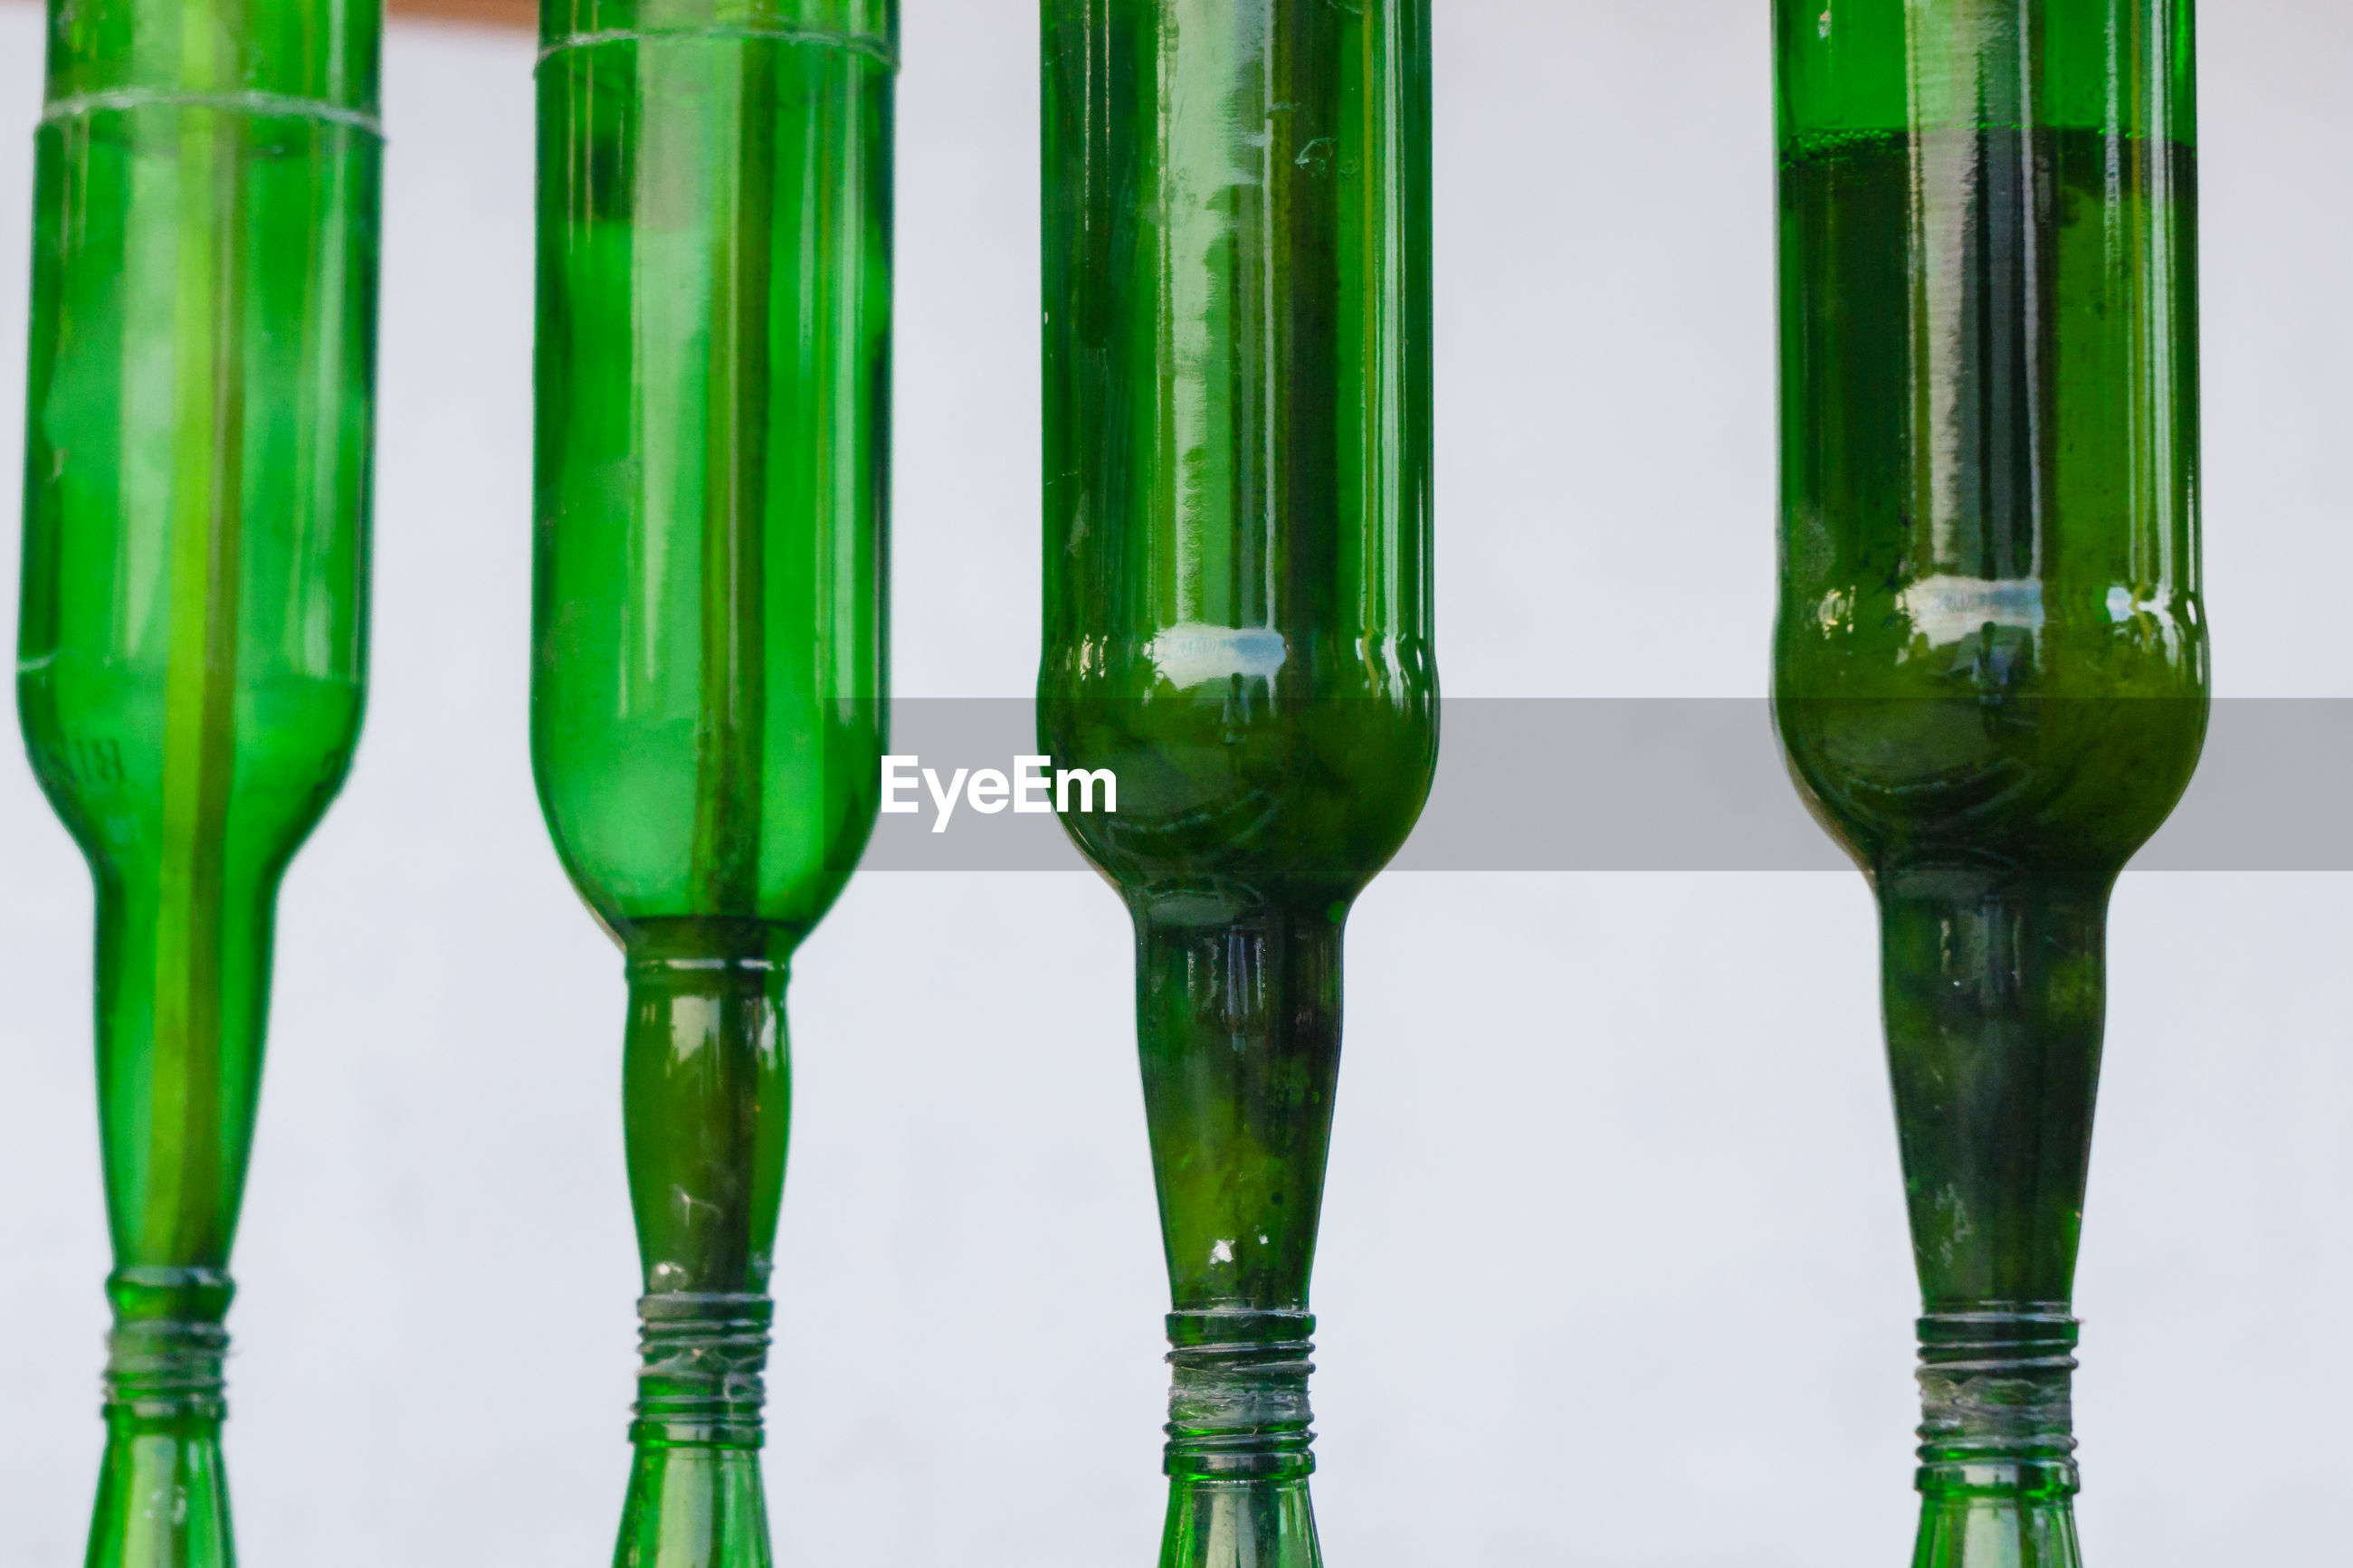 The close-up of green bottle